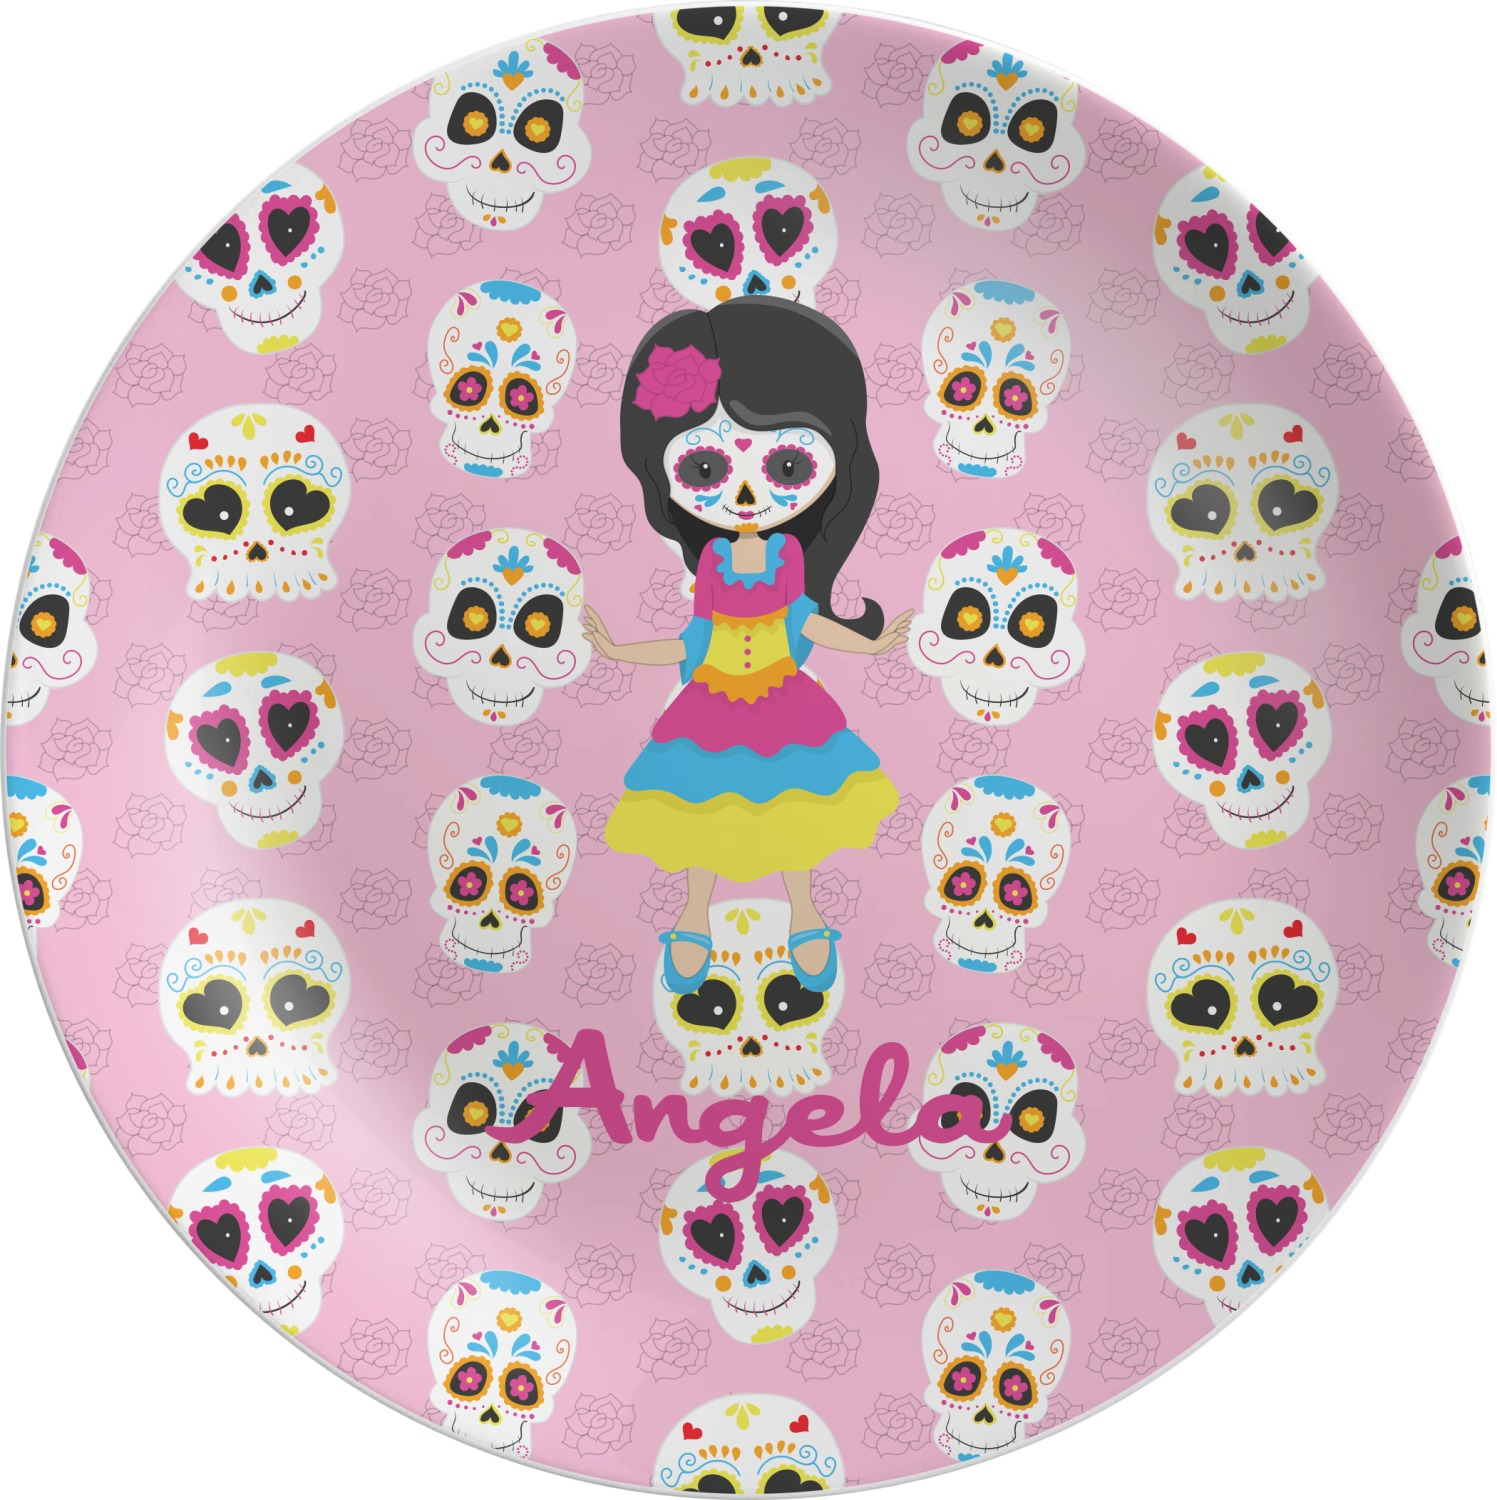 Kids Sugar Skulls Melamine Plate (Personalized)  sc 1 st  YouCustomizeIt & Kids Sugar Skulls Melamine Plate (Personalized) - YouCustomizeIt